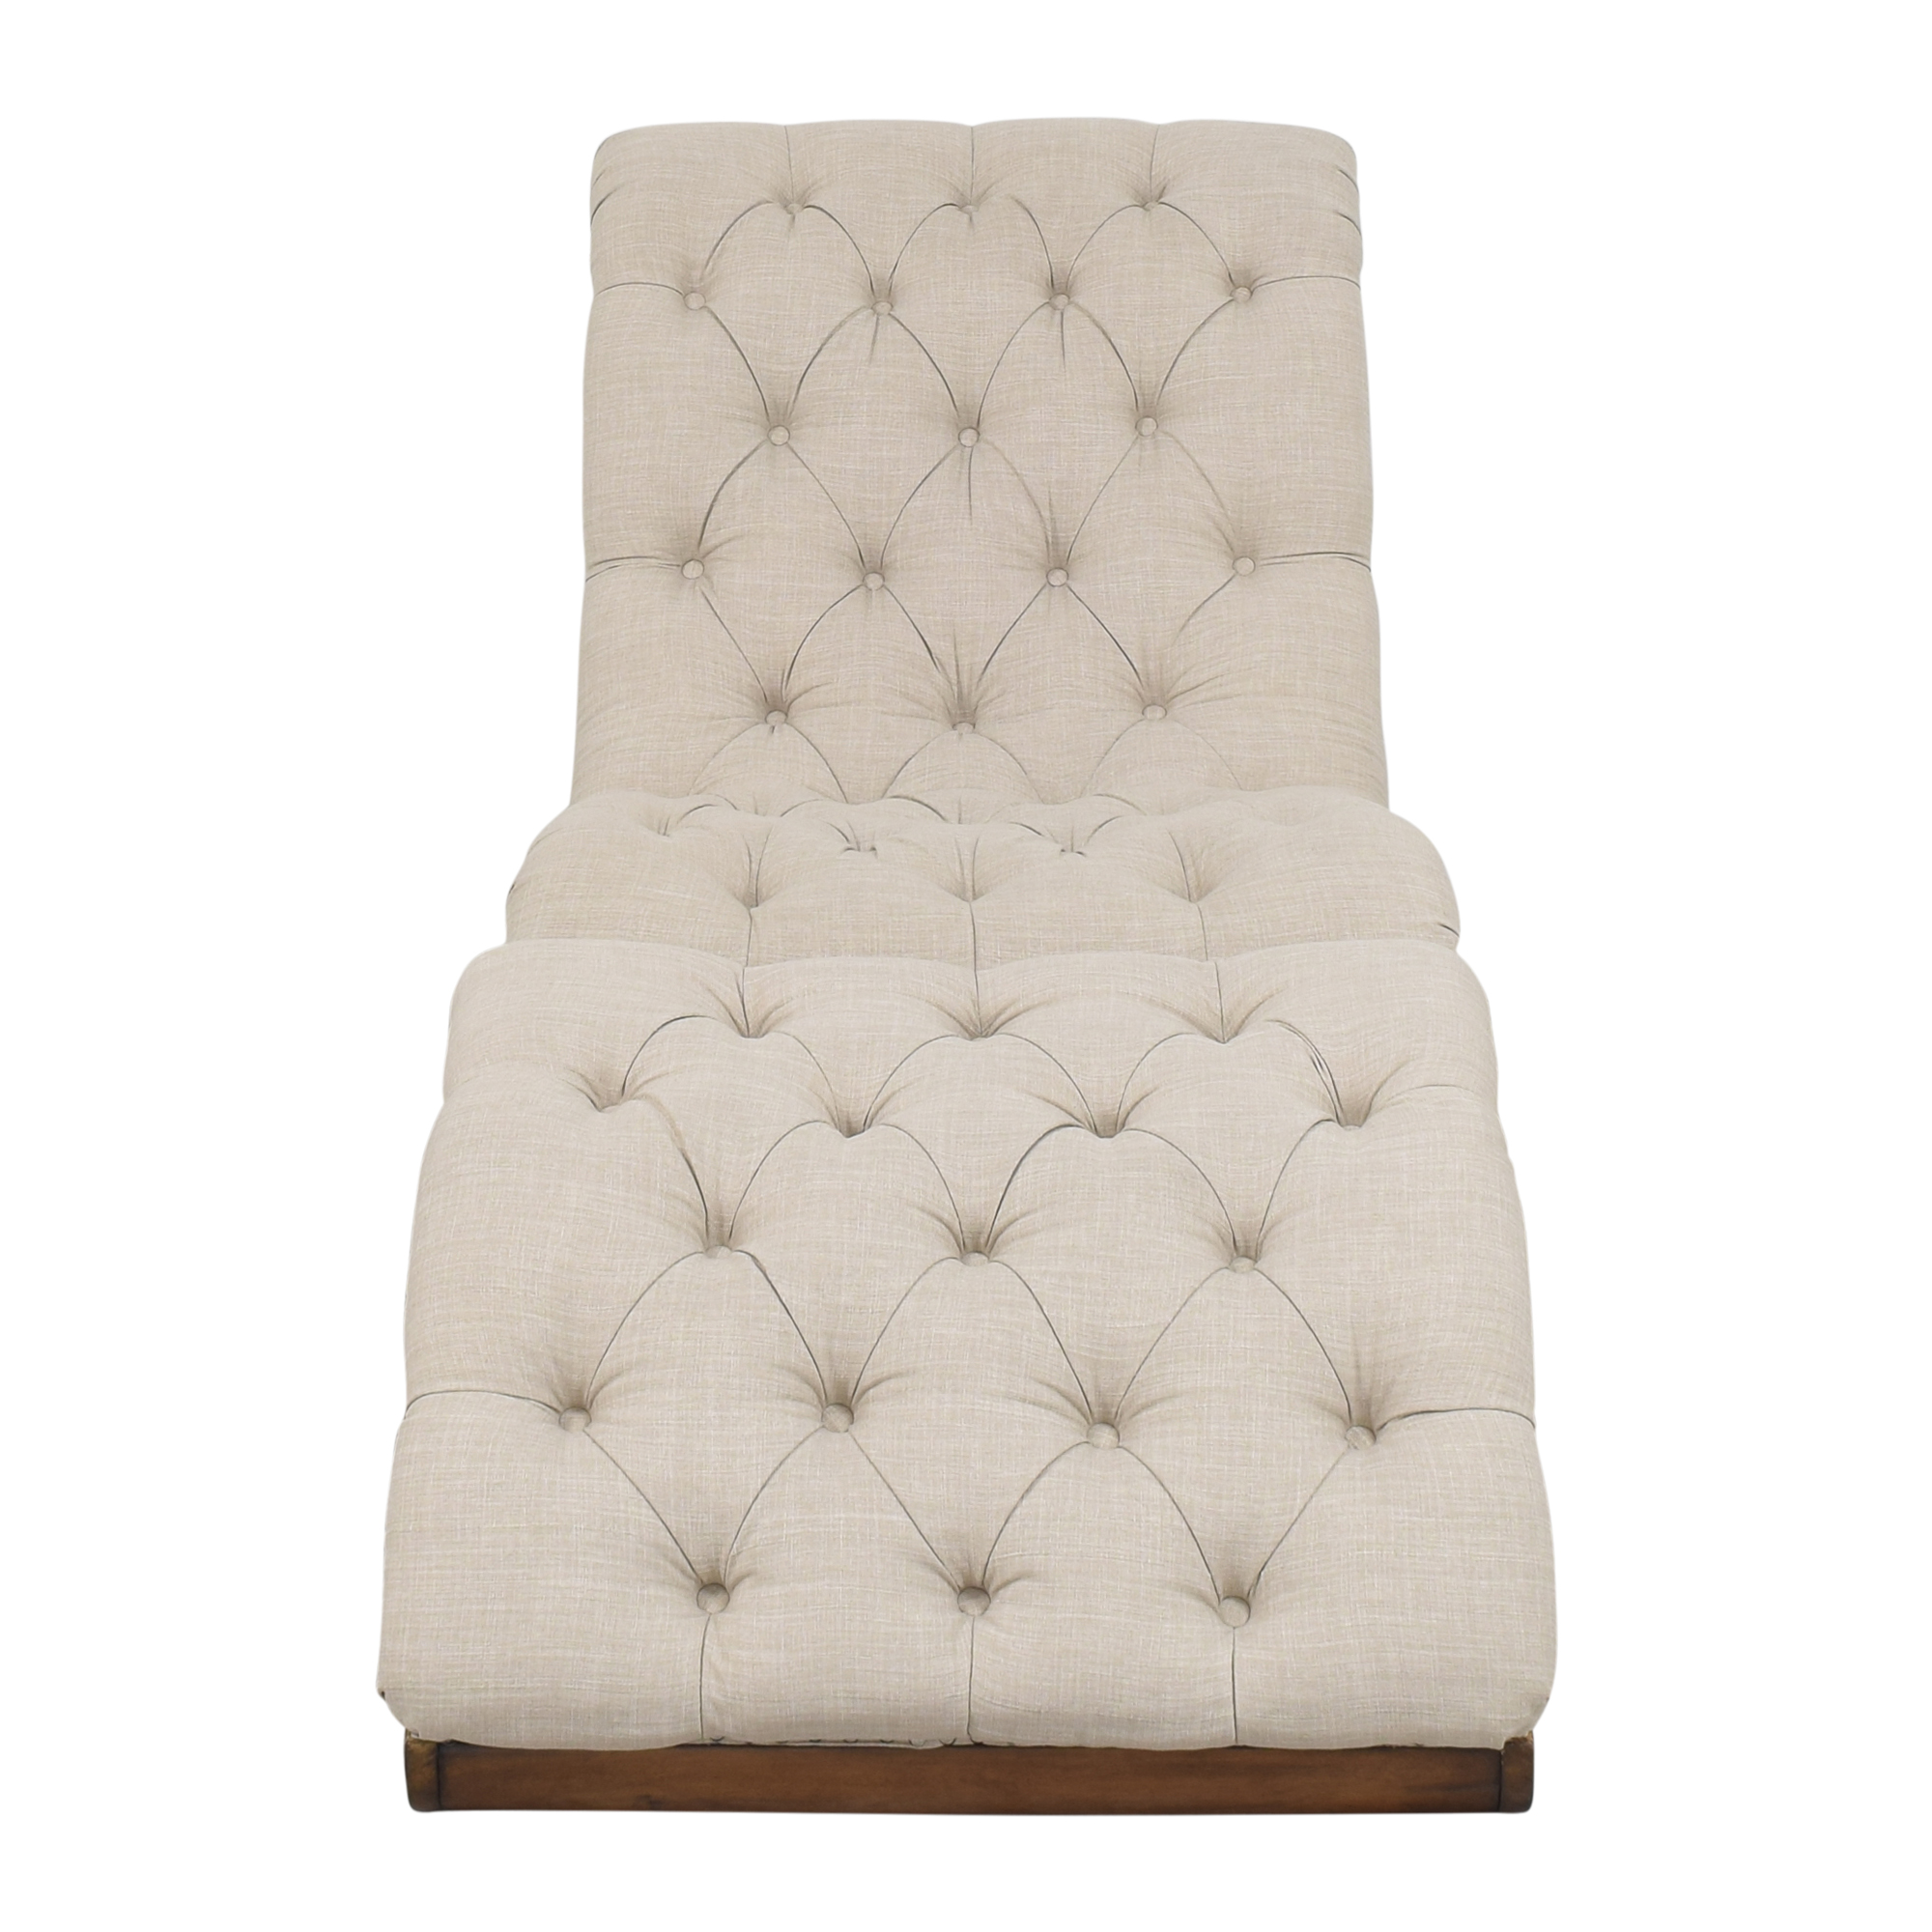 Lark Manor Lark Manor Versailles Tufted Chair with Ottoman price